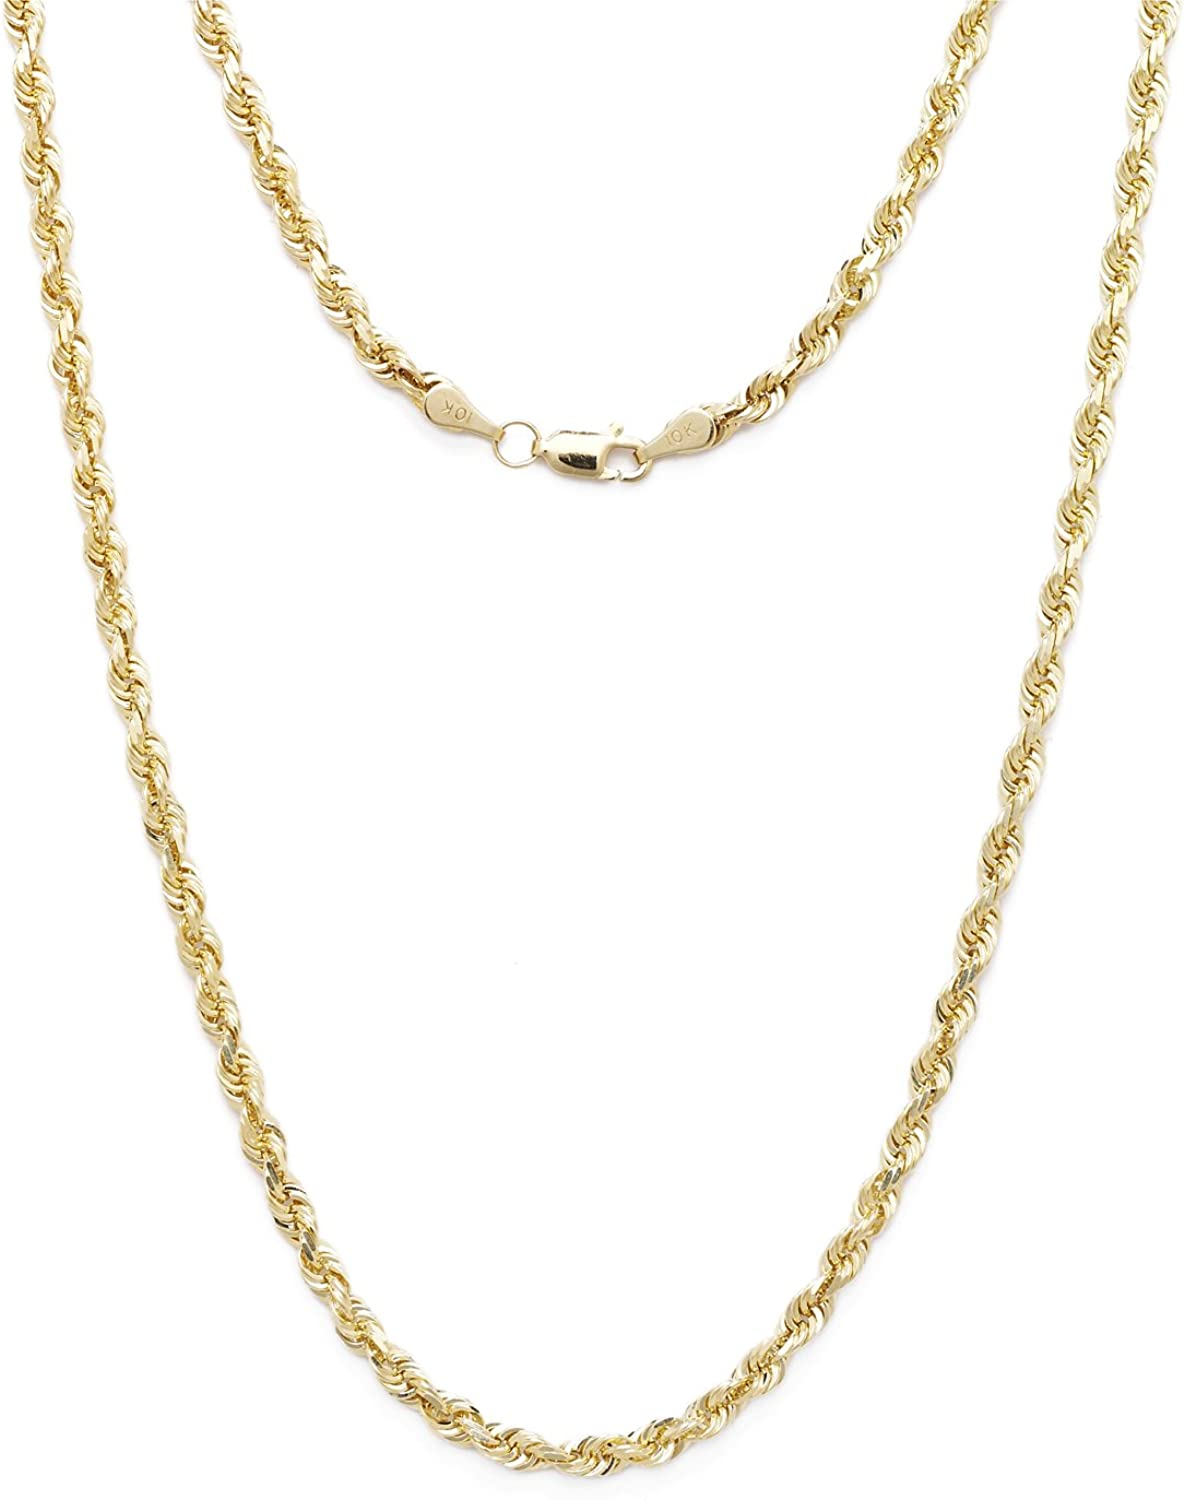 Floreo 10k Yellow Gold 5mm Solid Diamond Cut Rope Chain Necklace